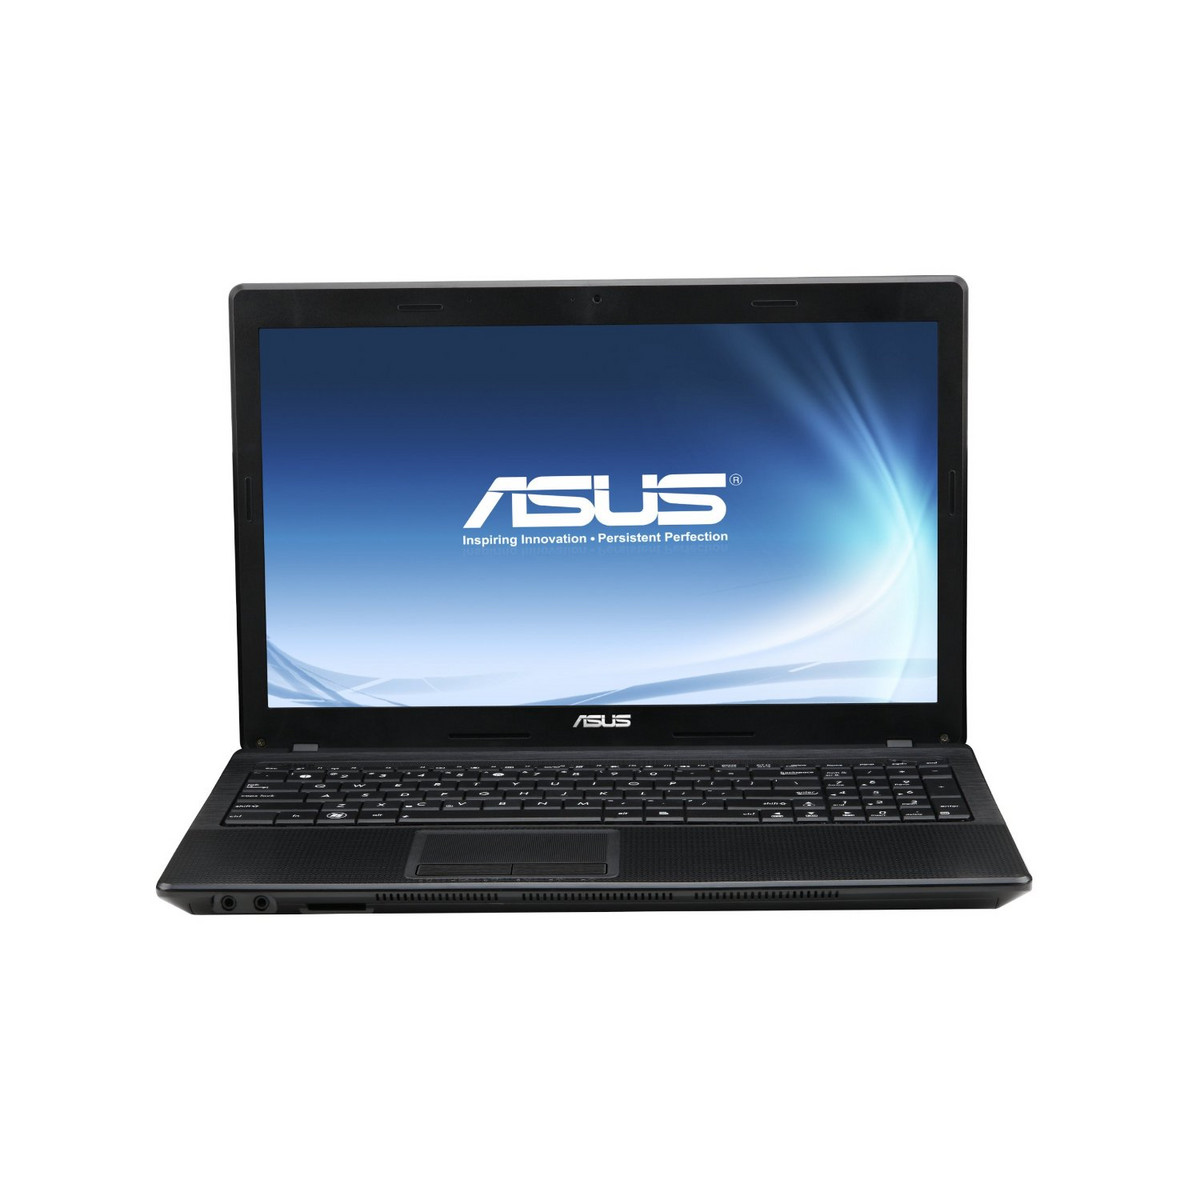 ASUS X54C NOTEBOOK INTEL DISPLAY WINDOWS 7 X64 TREIBER